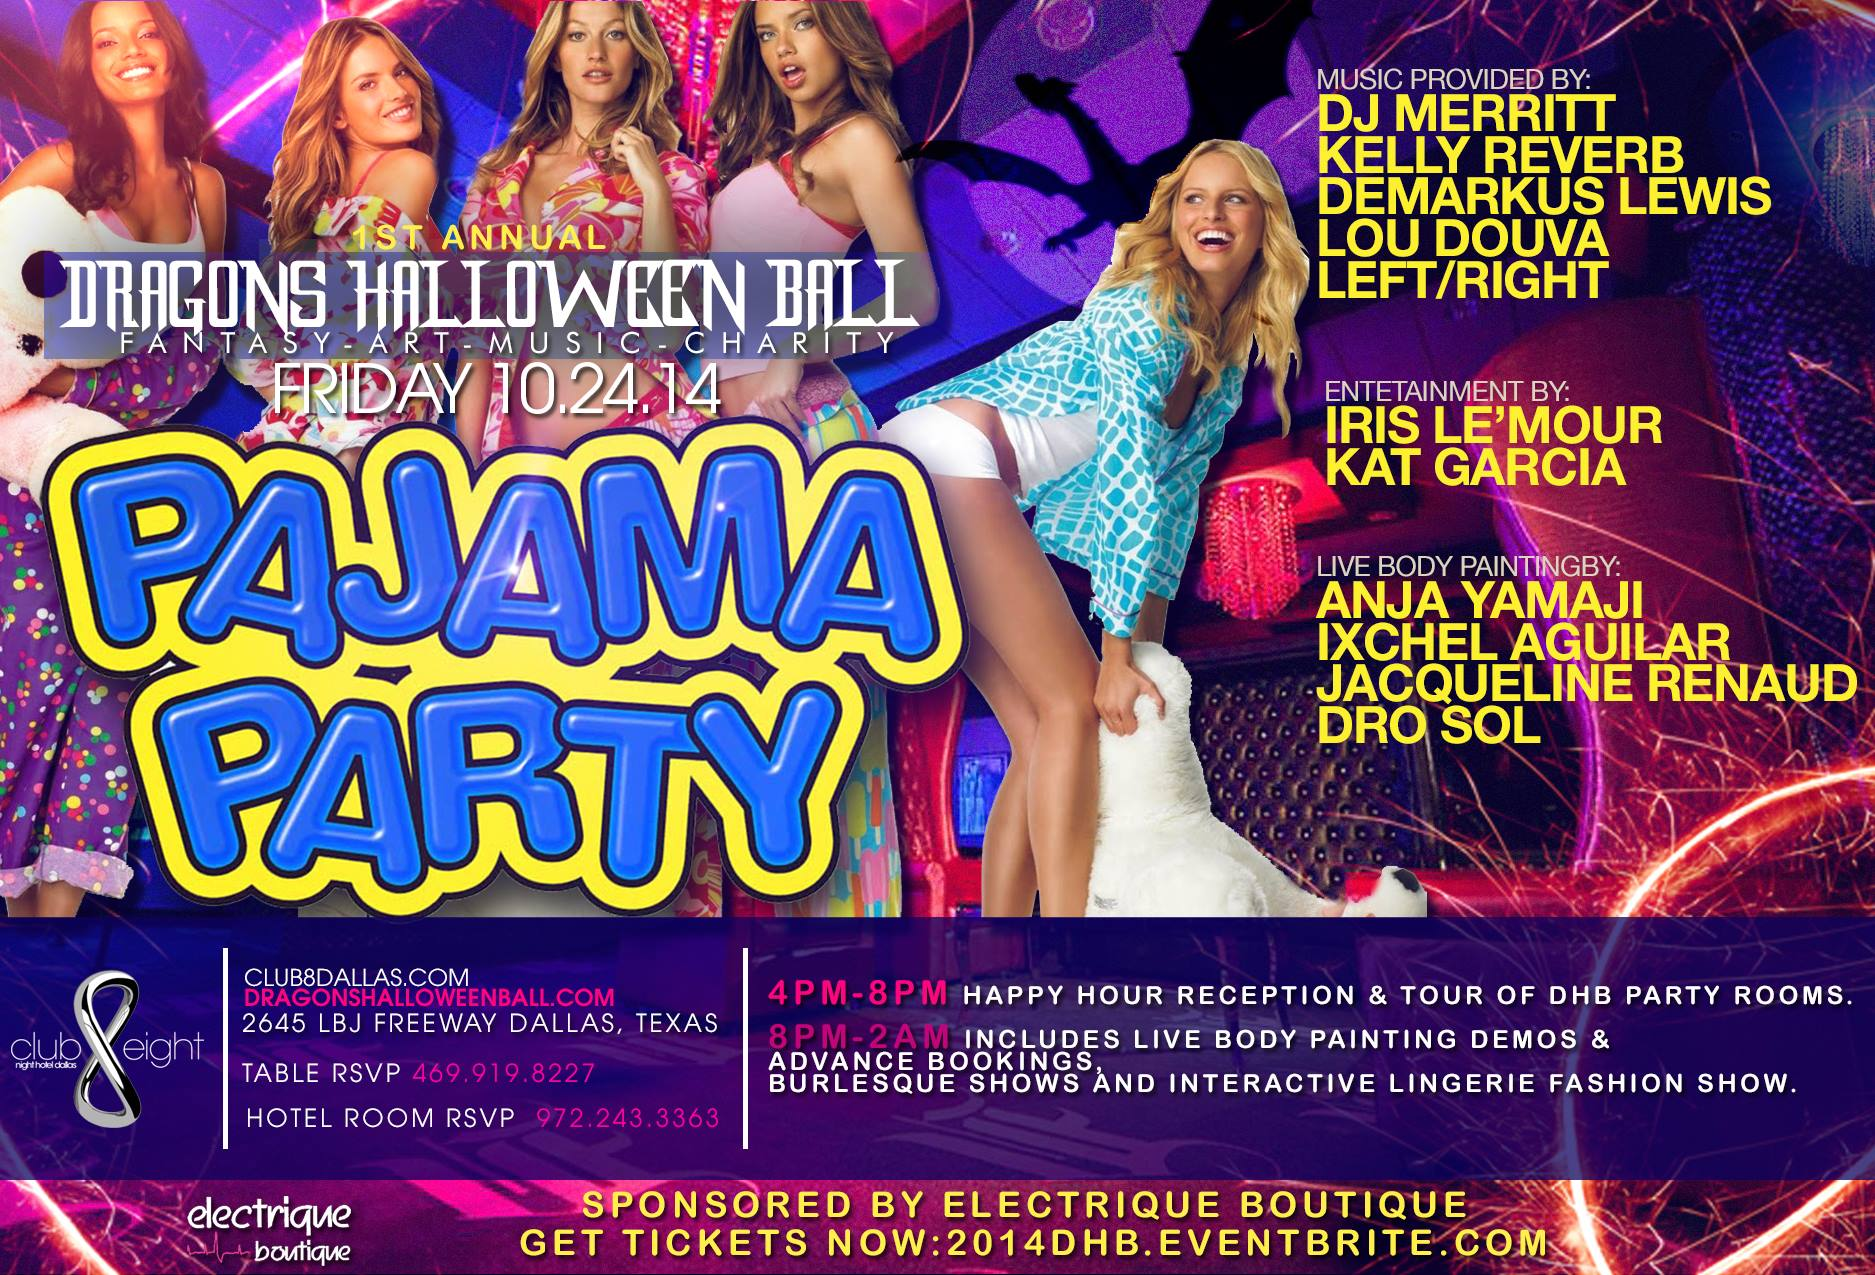 FRIDAY OCT 24th DHB EVE PAJAMA PARTY